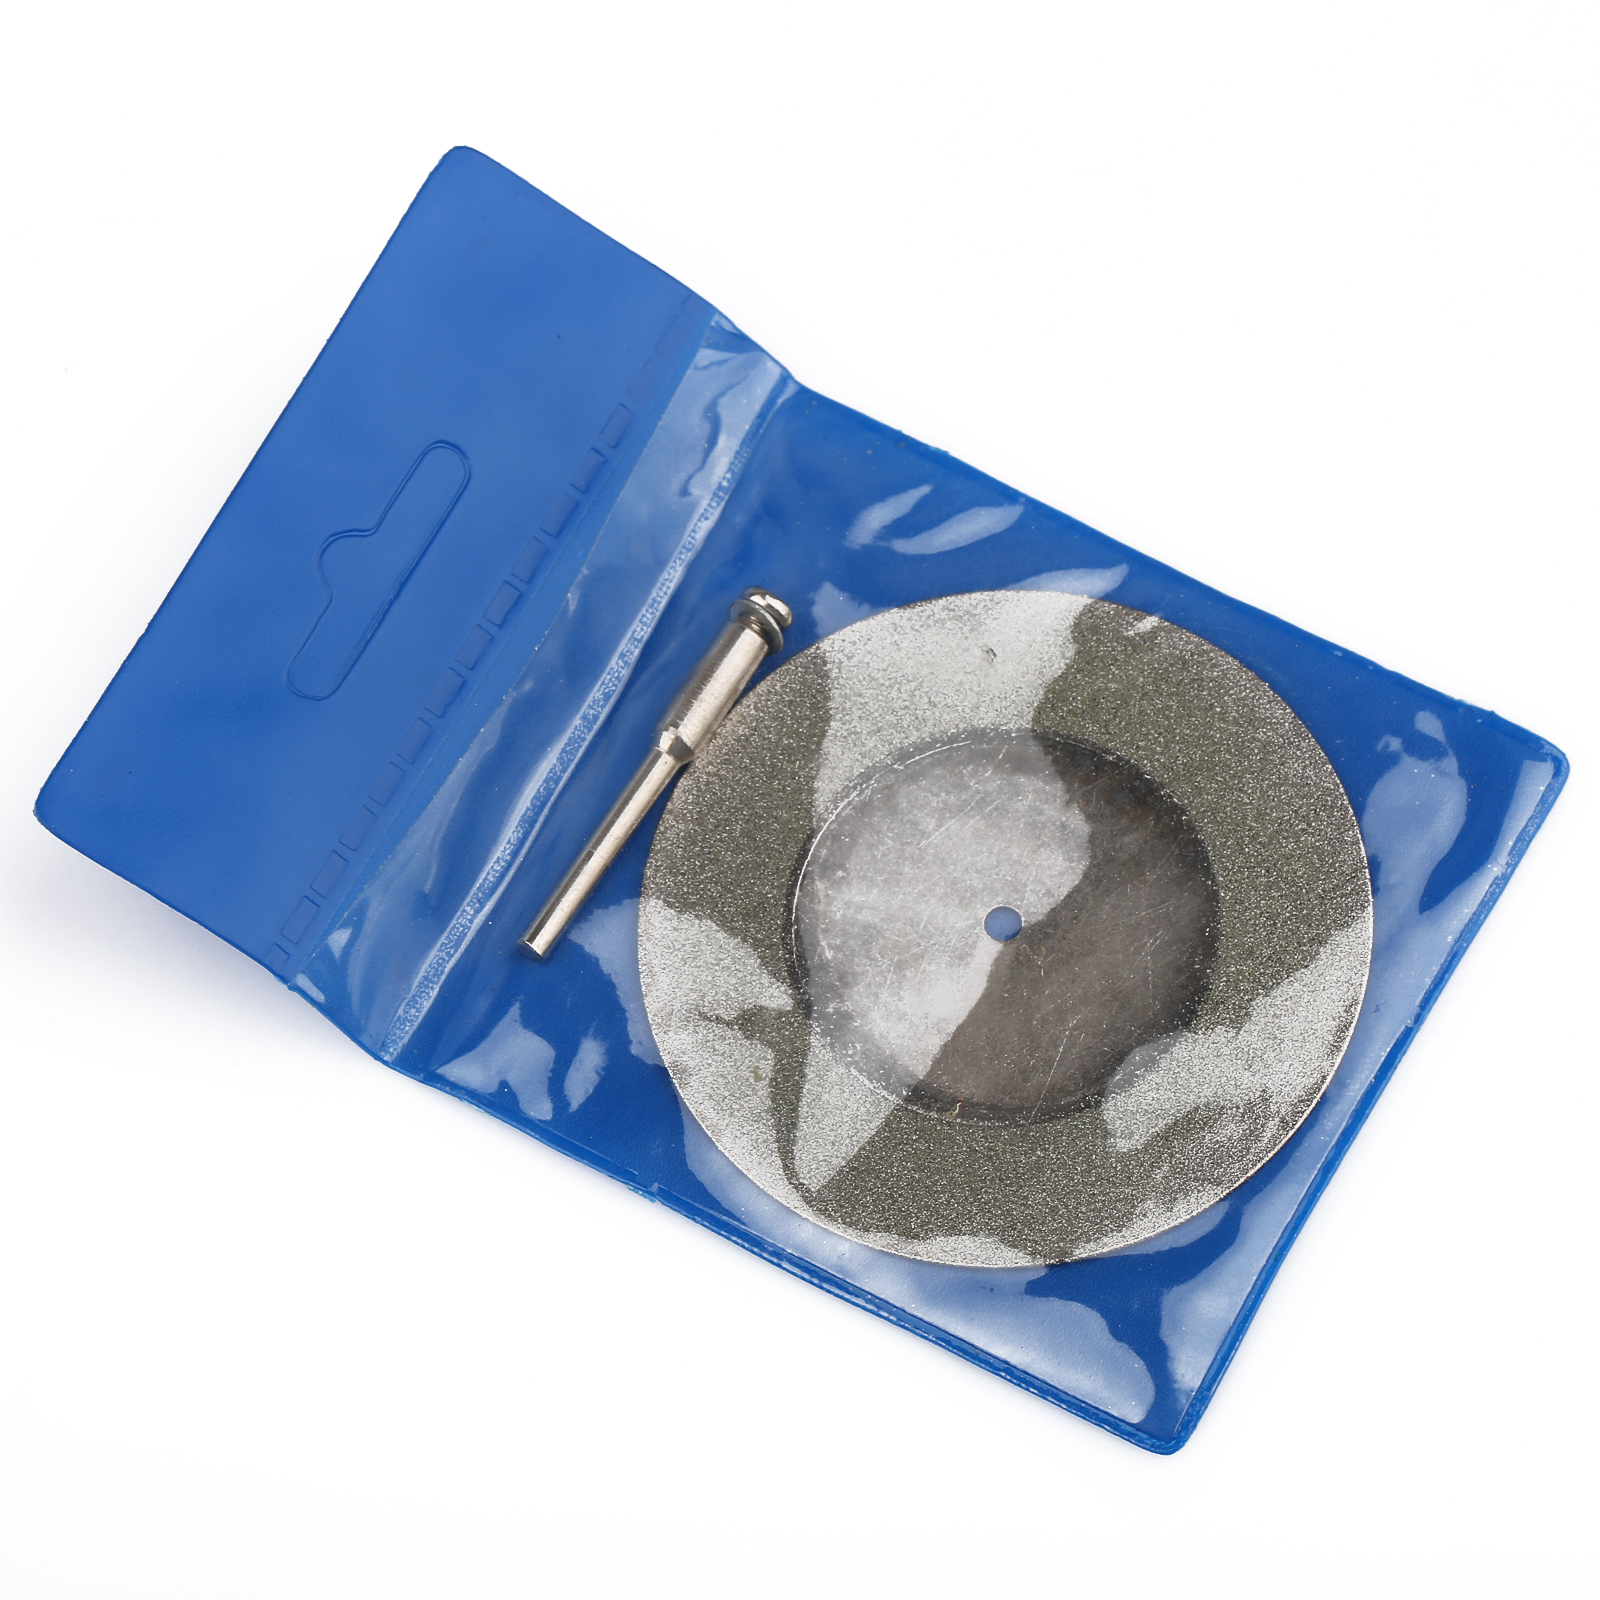 DRELD 1pcs 60mm Mini Diamond Saw Blade Diamond Cutting Discs With 1pc Connecting 3mm Shank For Dremel Drill Fit Rotary Tool